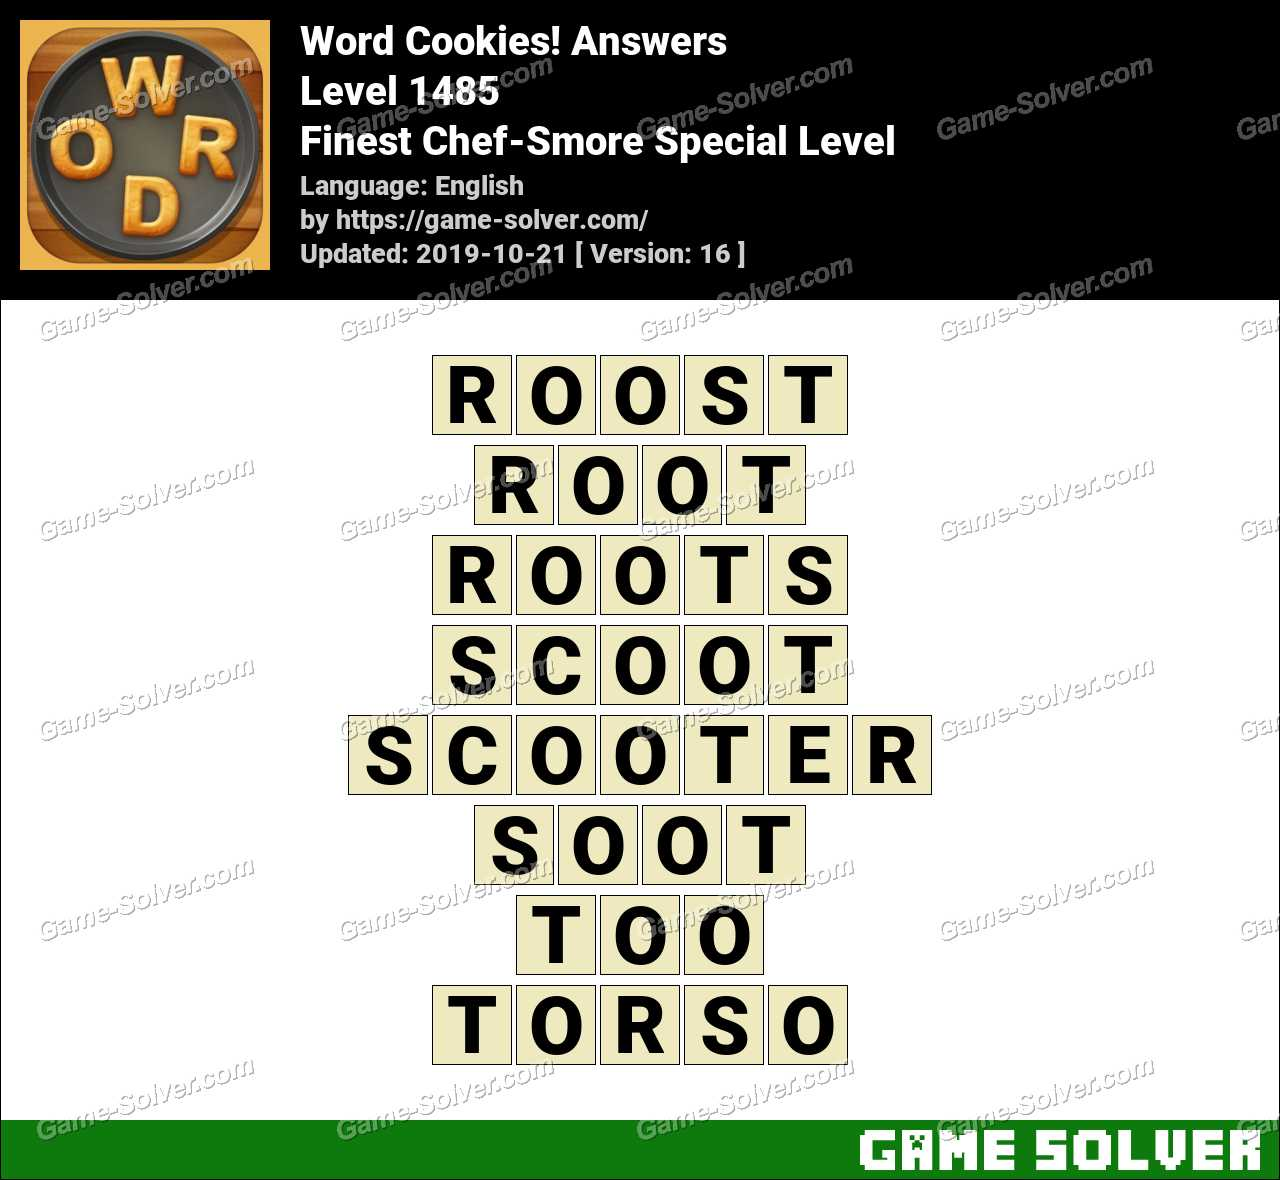 Word Cookies Finest Chef-Smore Special Level Answers